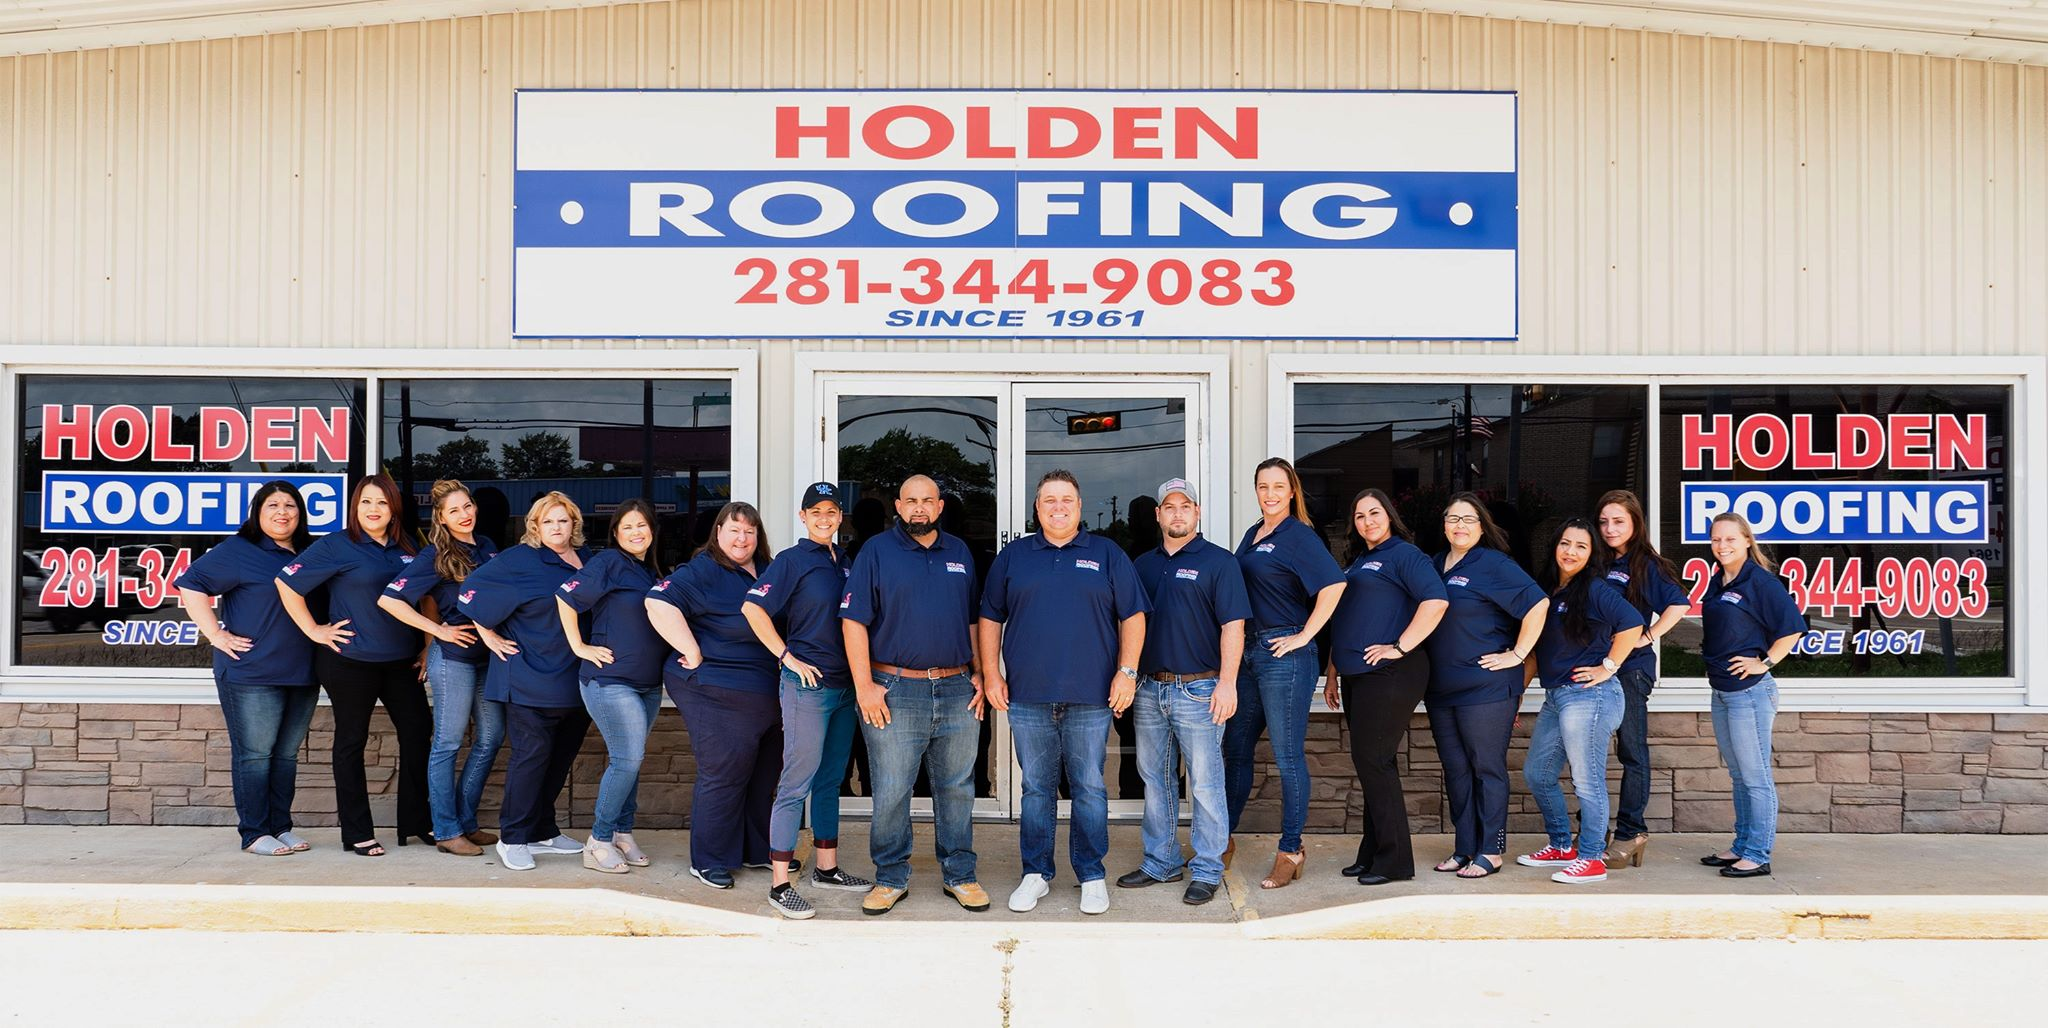 holden roofing team